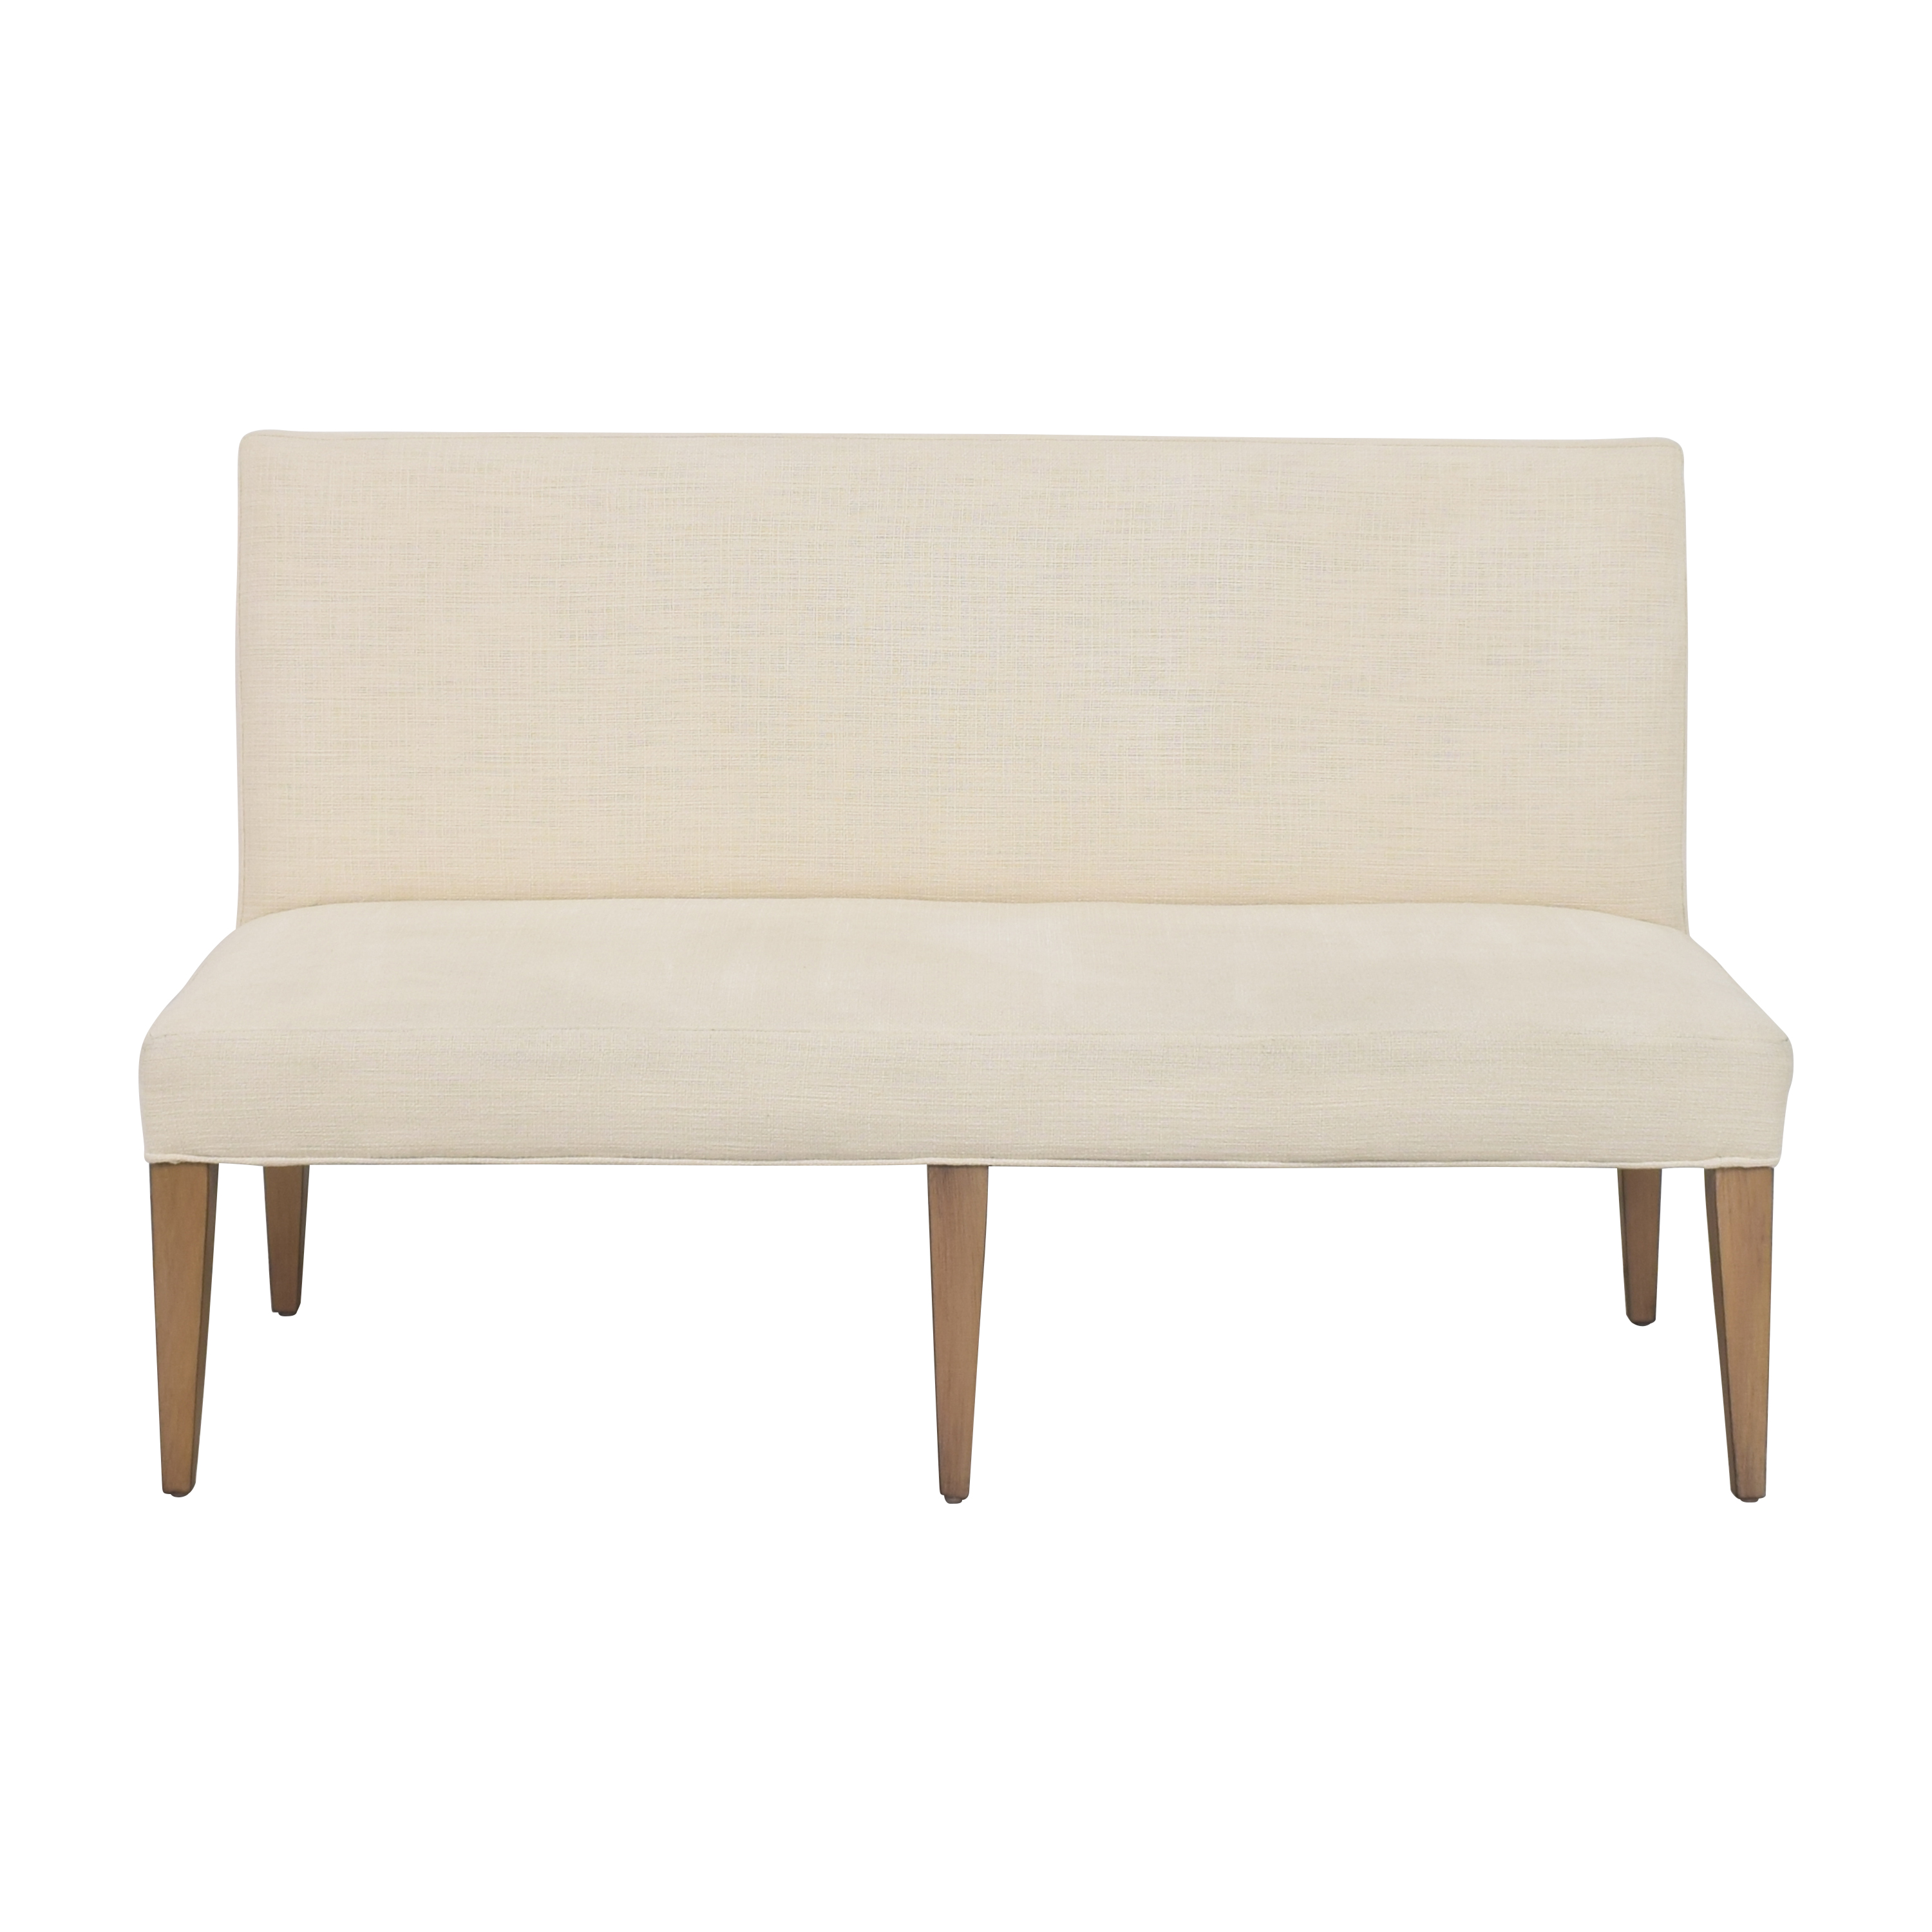 Serena & Lily Serena & Lily Ross Dining Bench